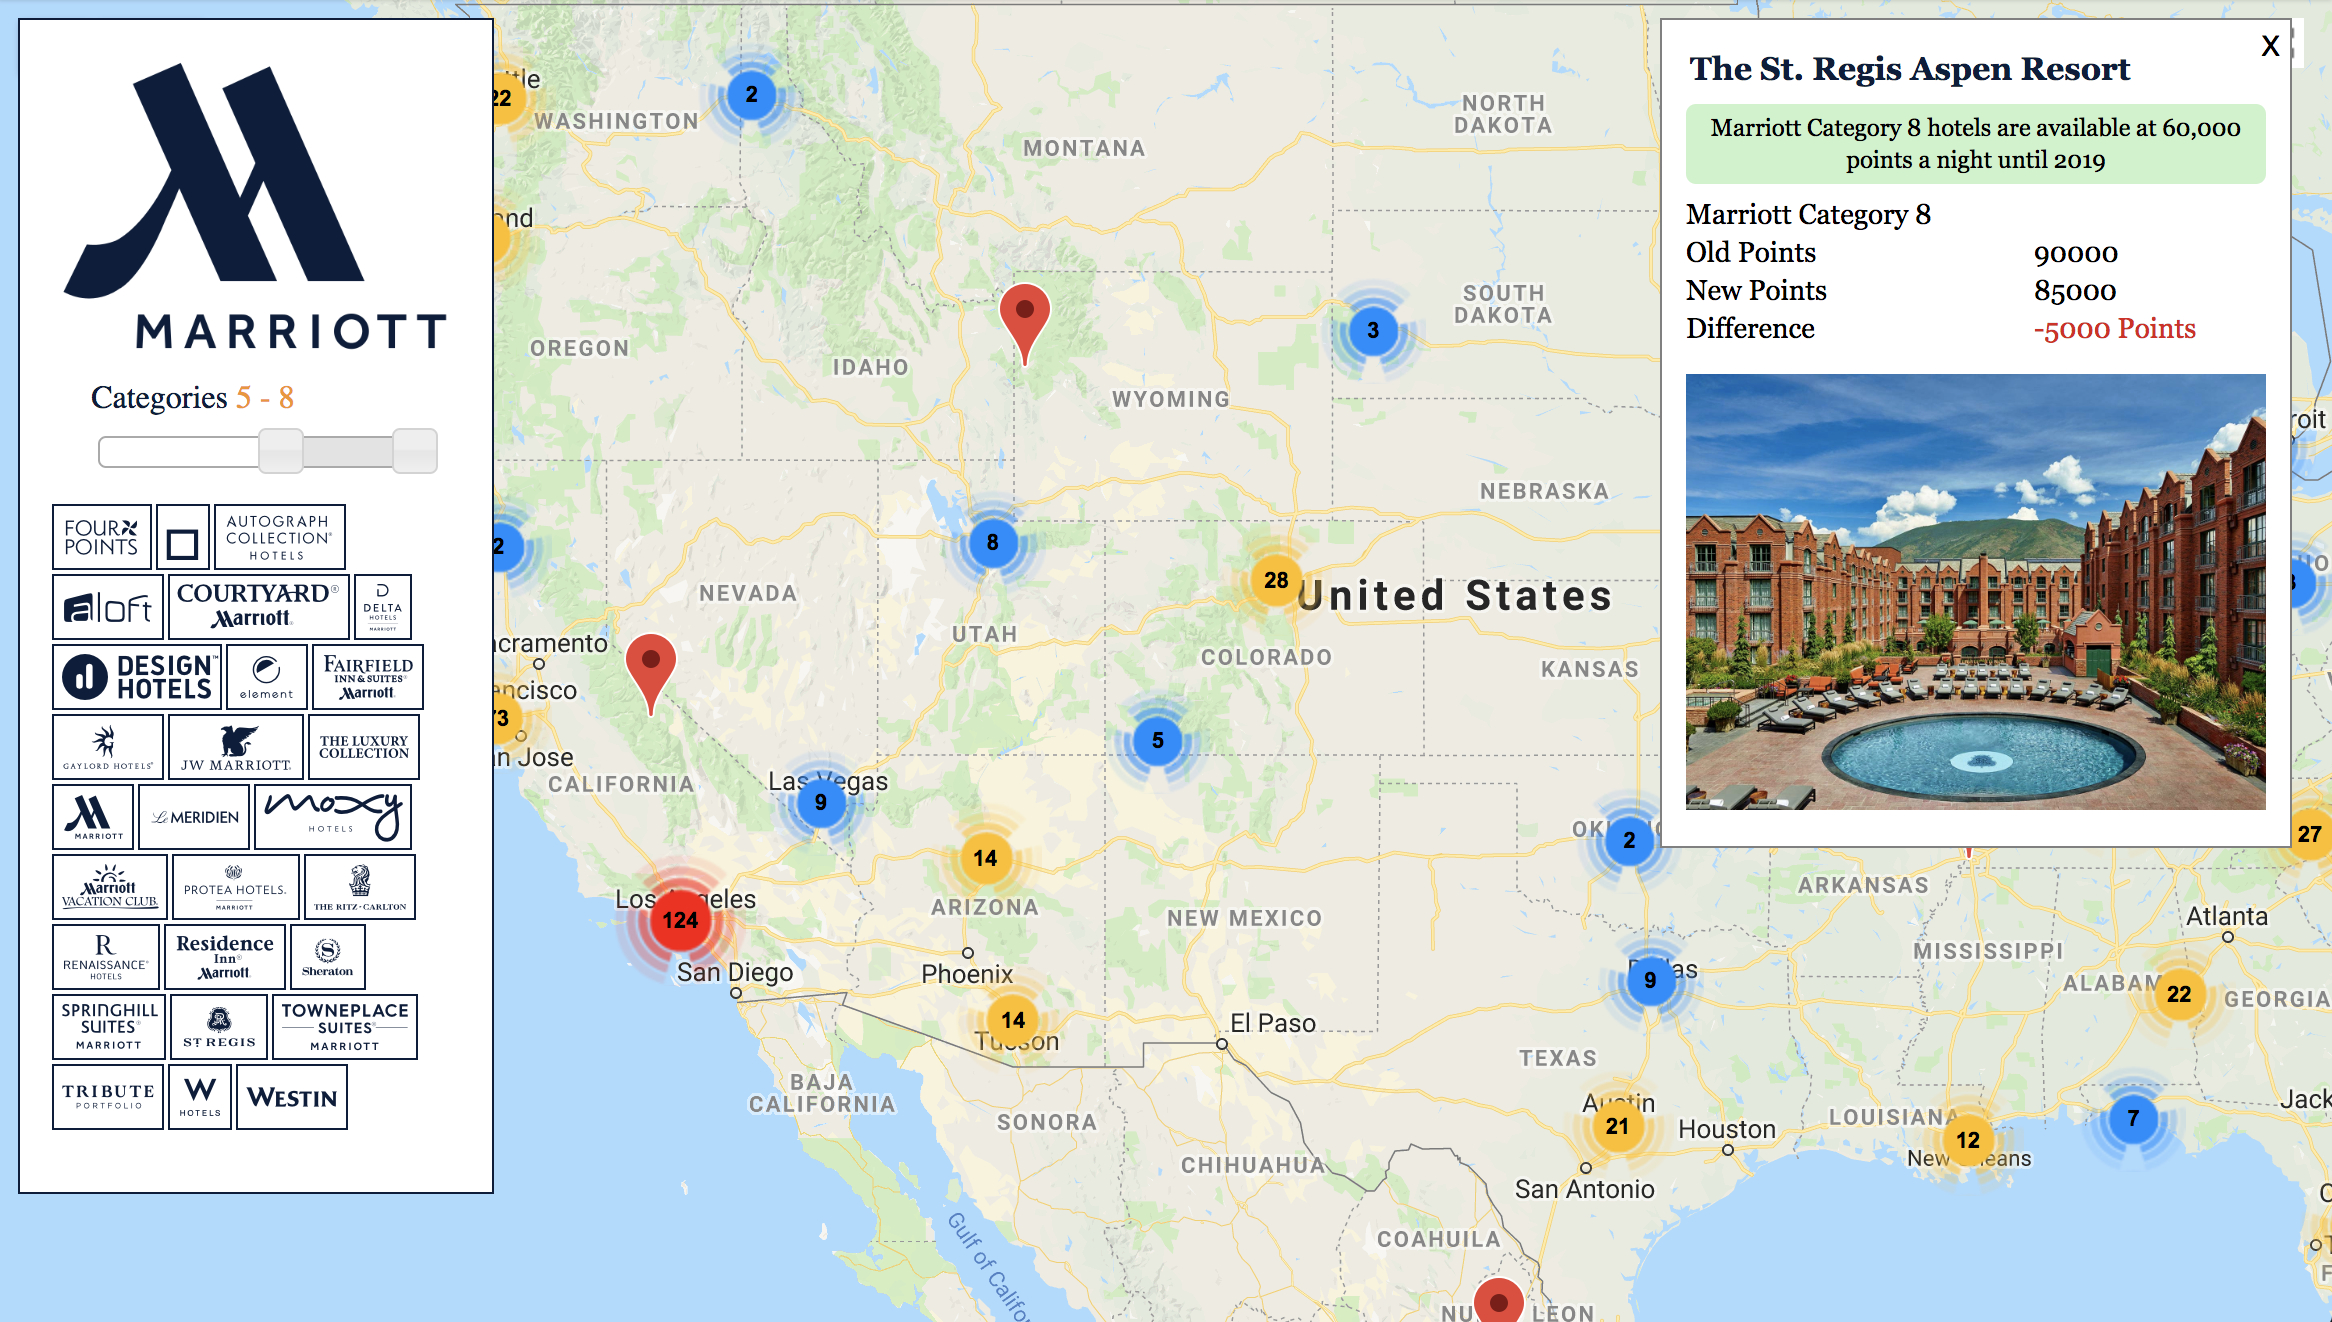 Updated Marriott Map With New Category Changes And Starwood Hotels - Spg Hotels California Map